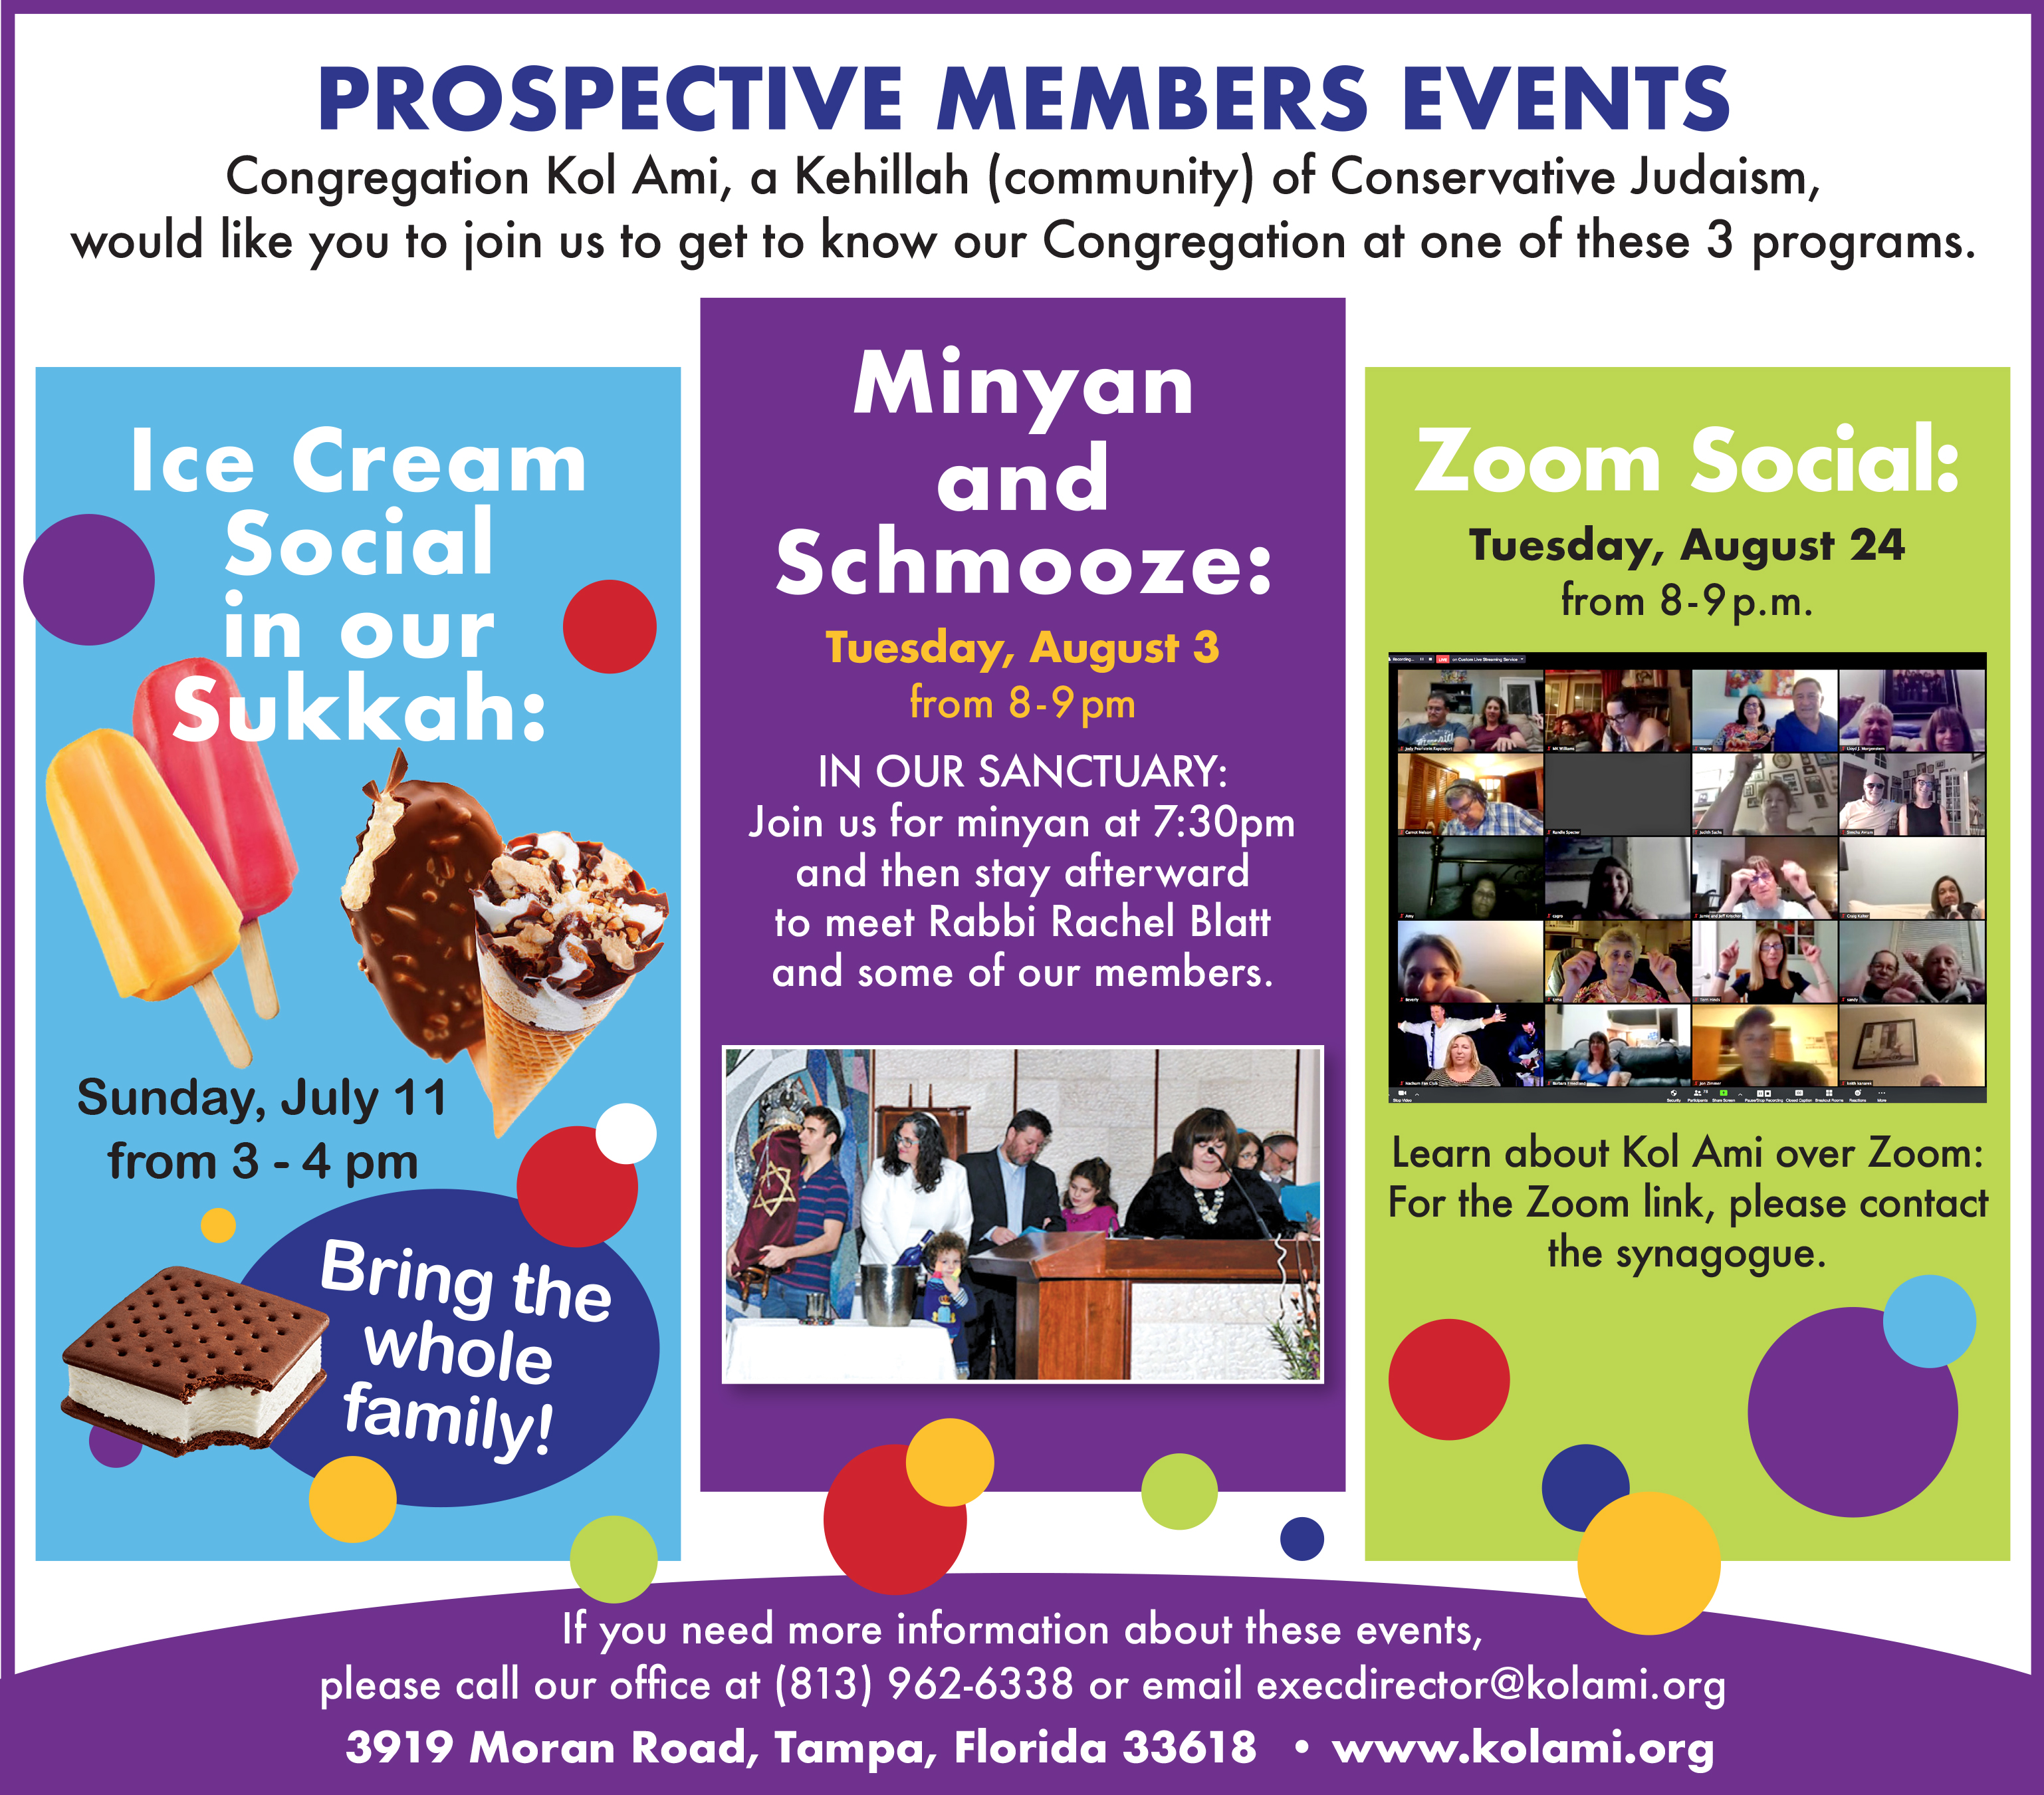 Banner Image for Prospective New Members' Social Event: Minyan and Schmooze